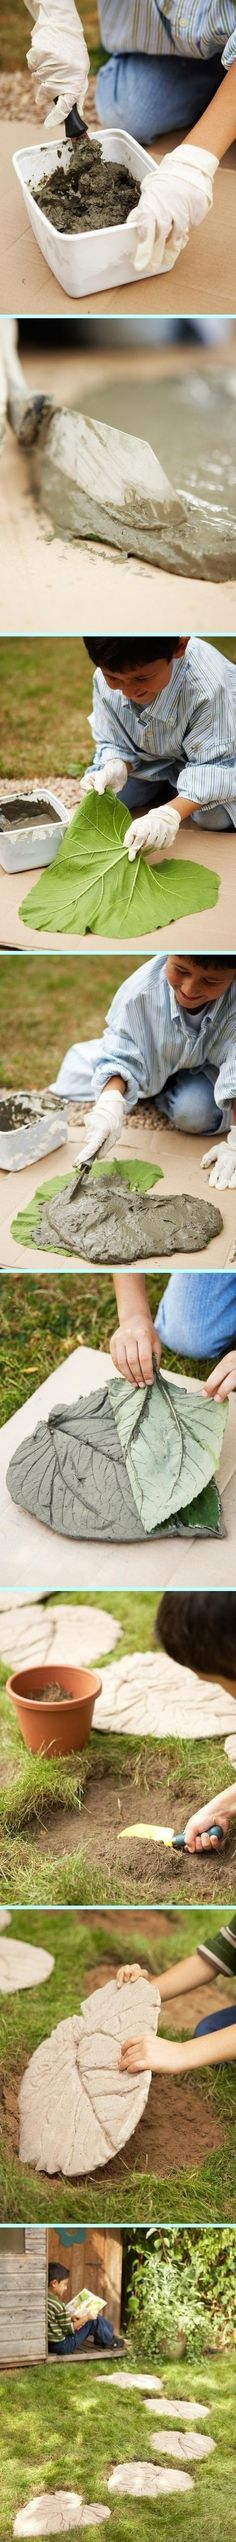 DIY Cement leaf stepping stones